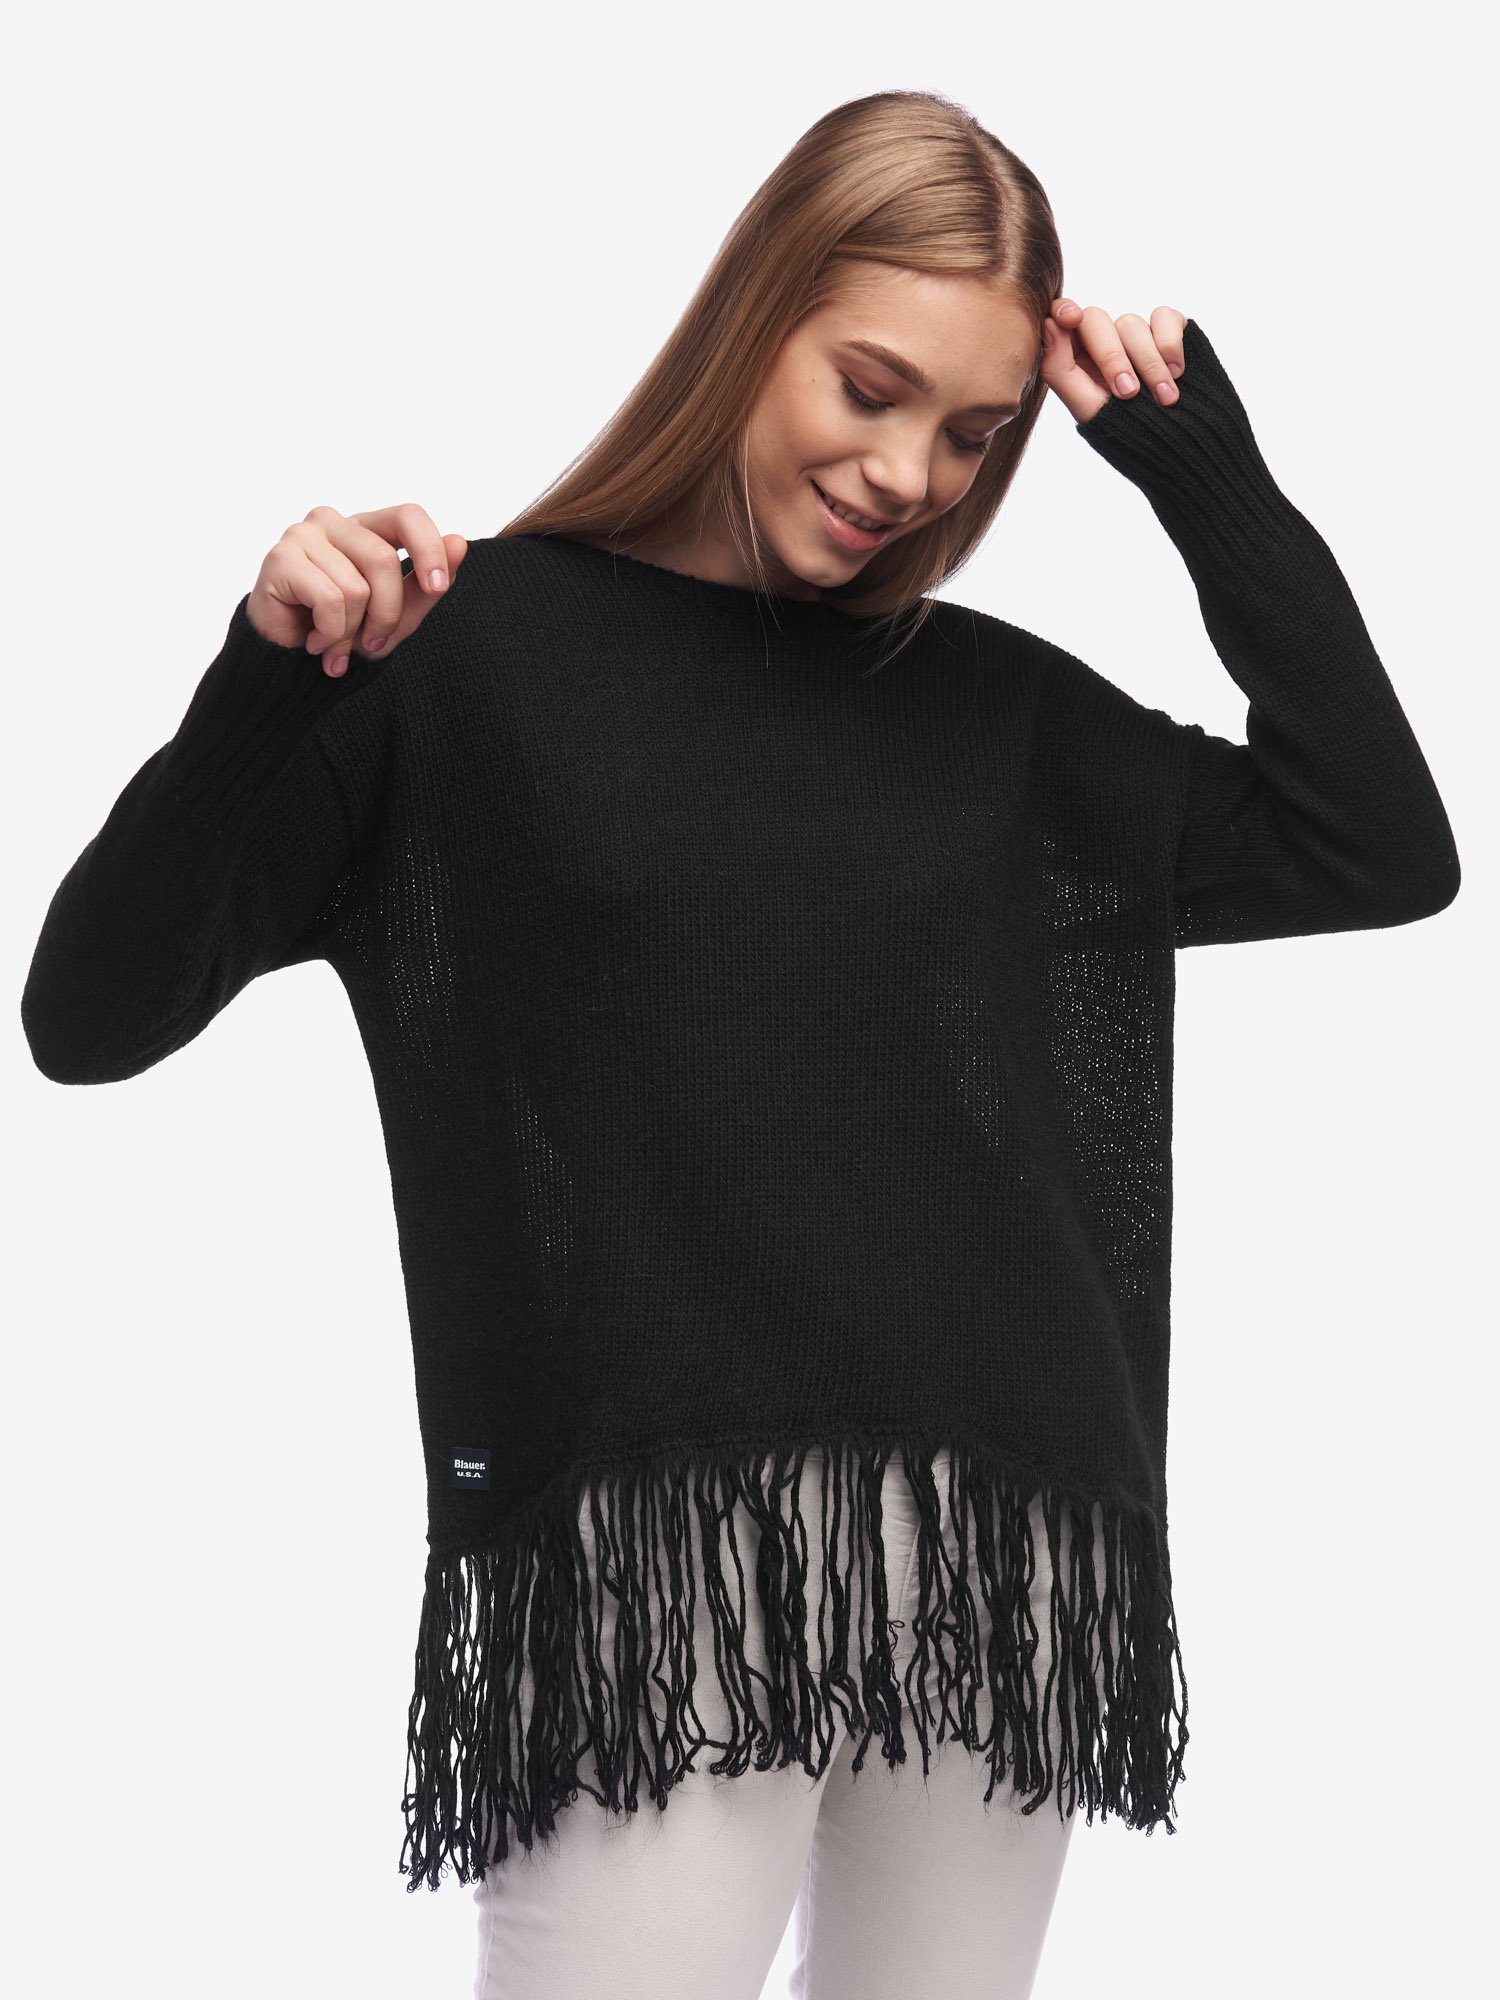 Blauer - FRINGED SWEATER - Black - Blauer